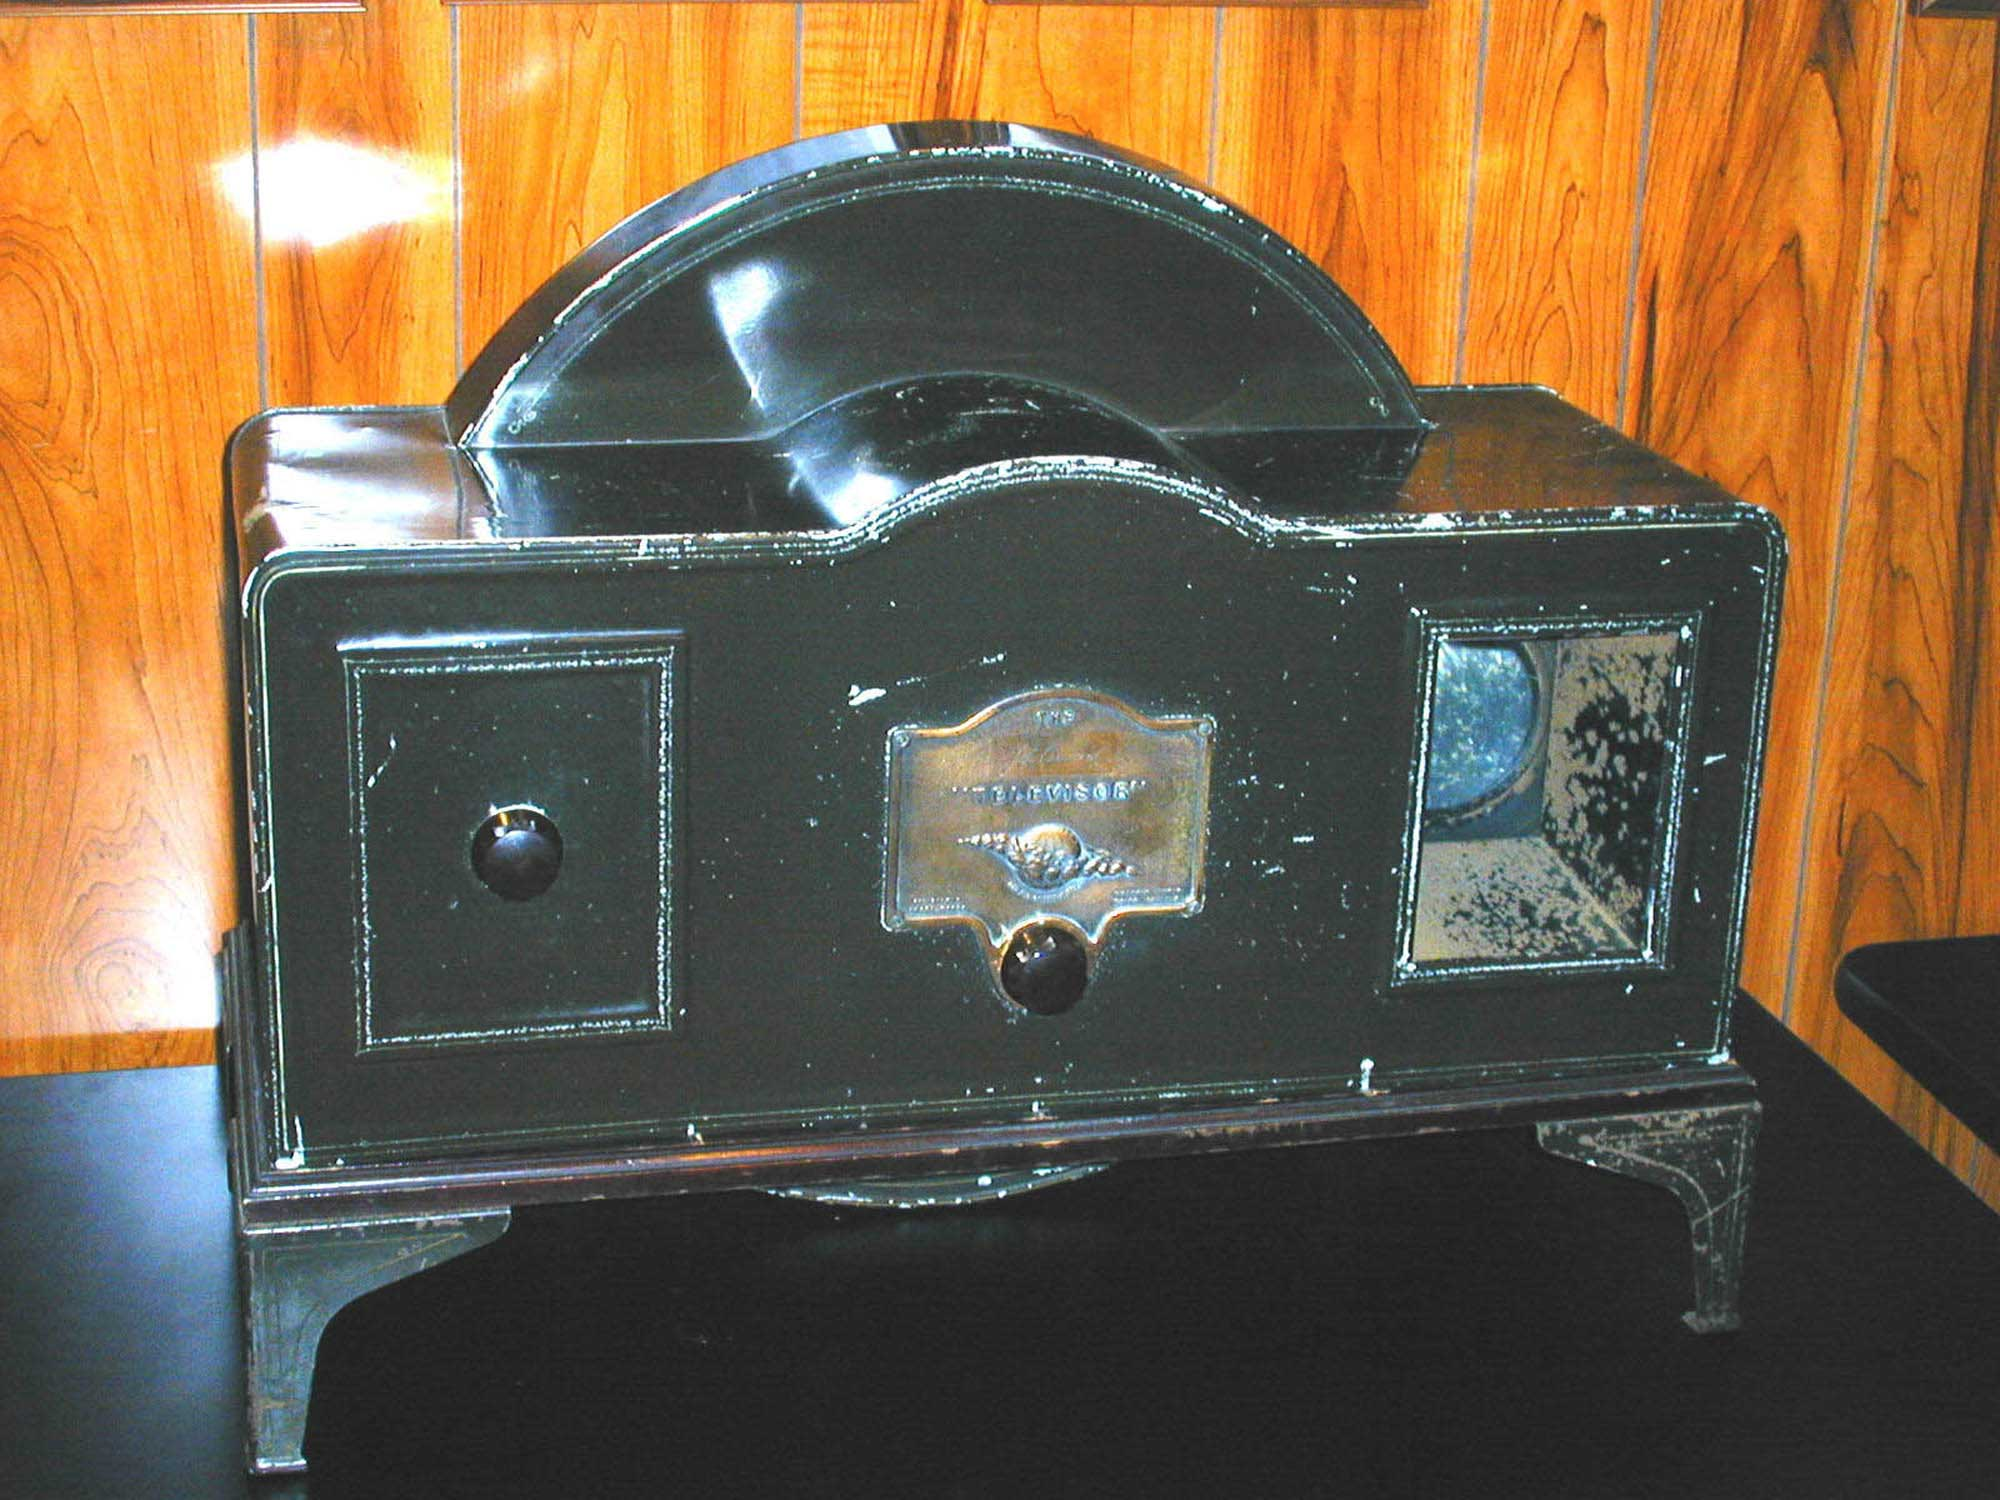 The 1929 Baird Televisor was the first commercially available mechanical television. It produced a poor quality image the size of a postage stamp. Image courtesy of the Early Television Foundation.